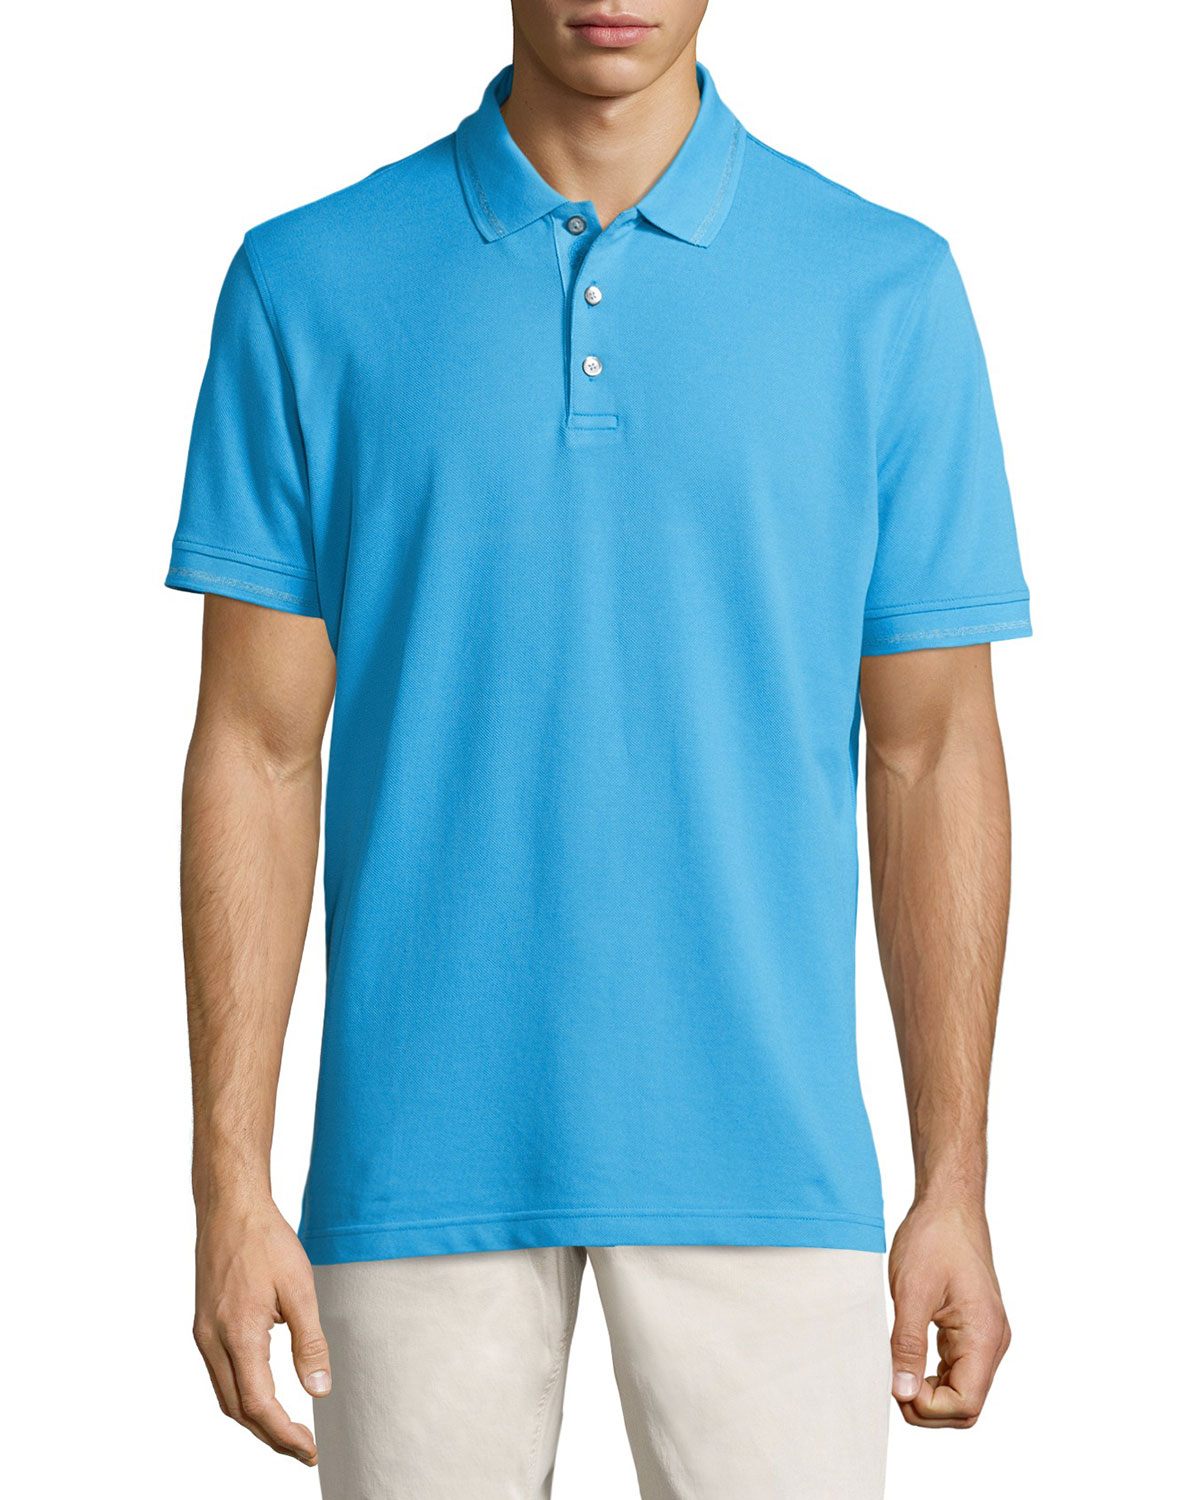 Robert graham Numero Knit 3-Button Polo Shirt in Blue for ...